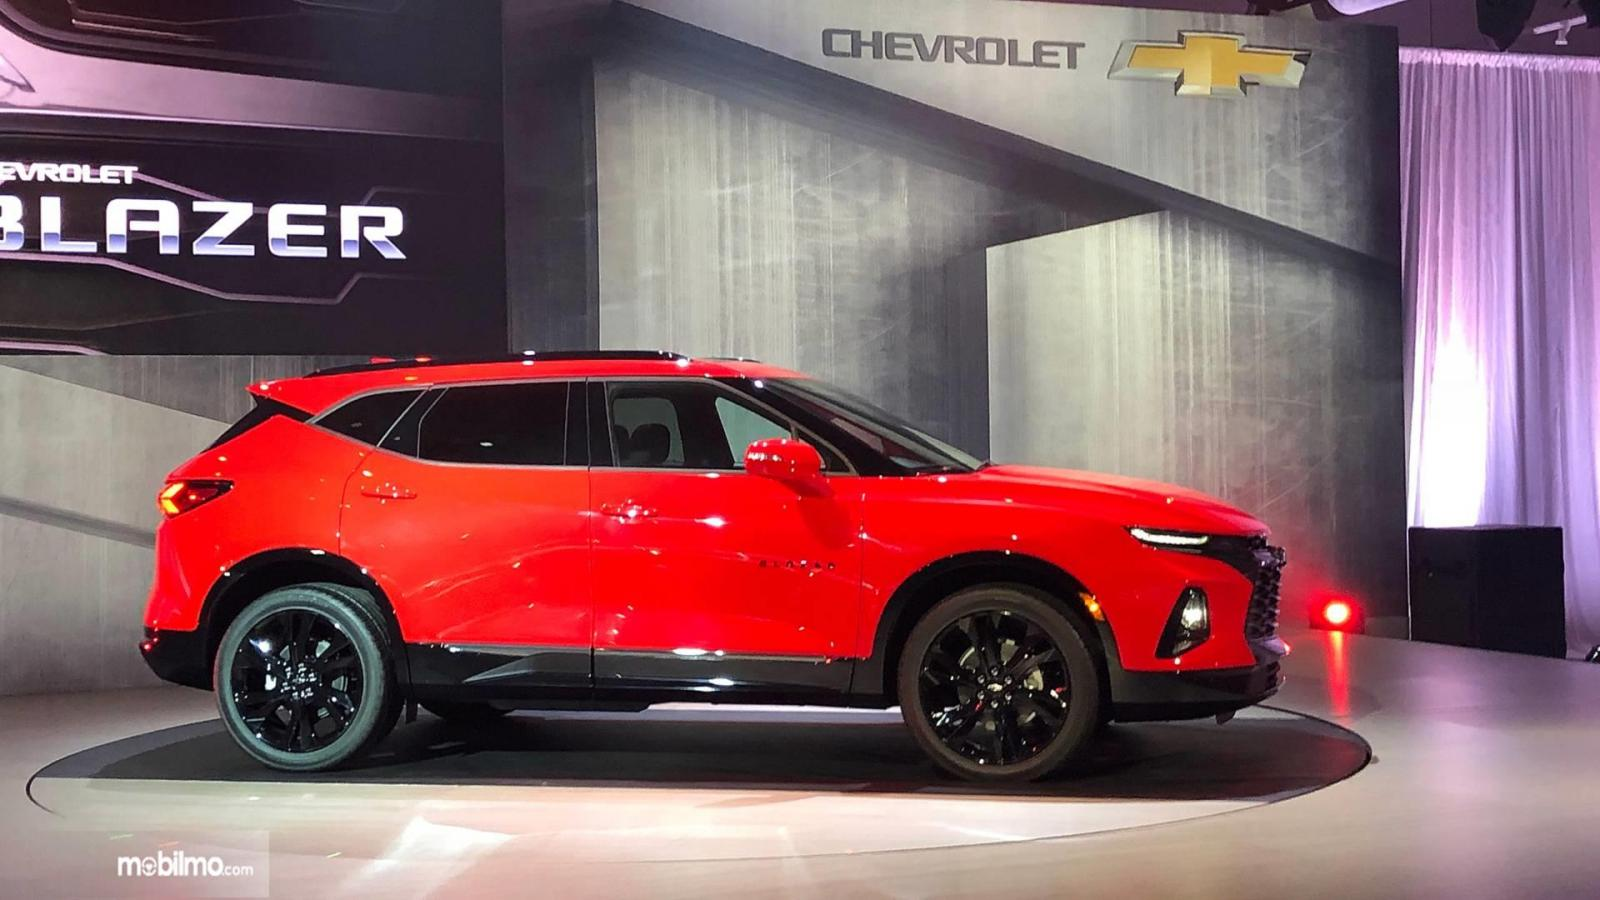 Tampilan samping All New Chevrolet Blazer 2019 berwarna merah